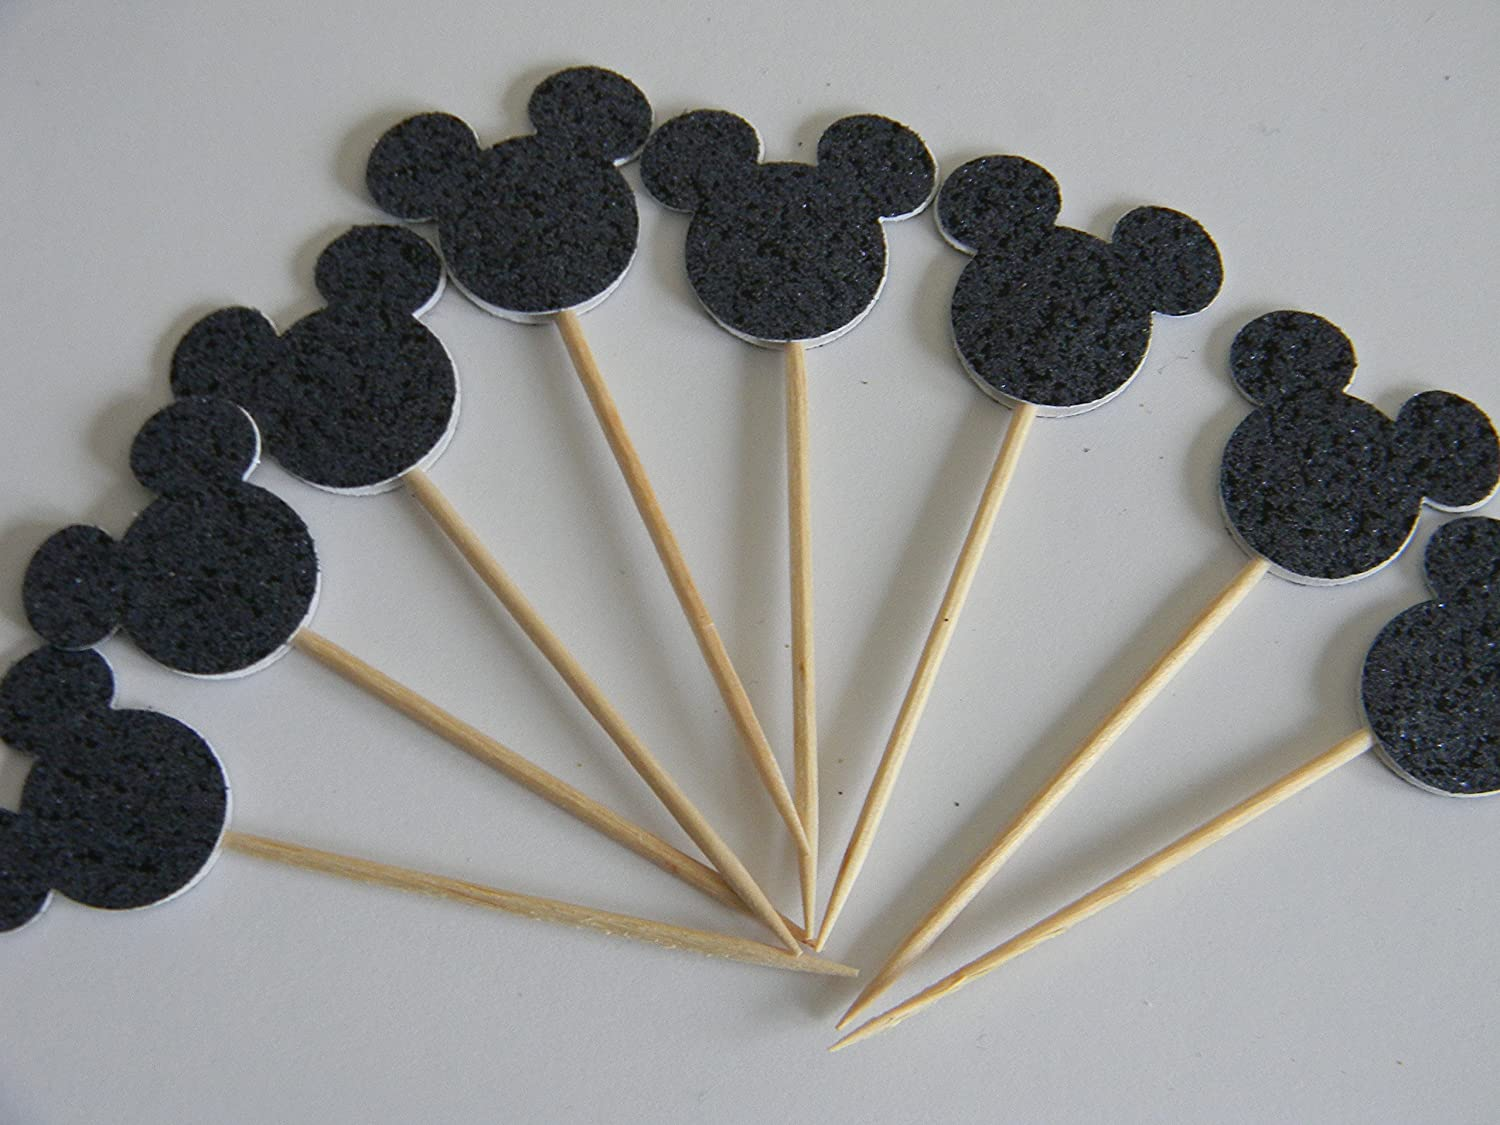 24 Black Glitter Mickey Mouse inspired cupcake toppers food picks birthday party décor shower supplies